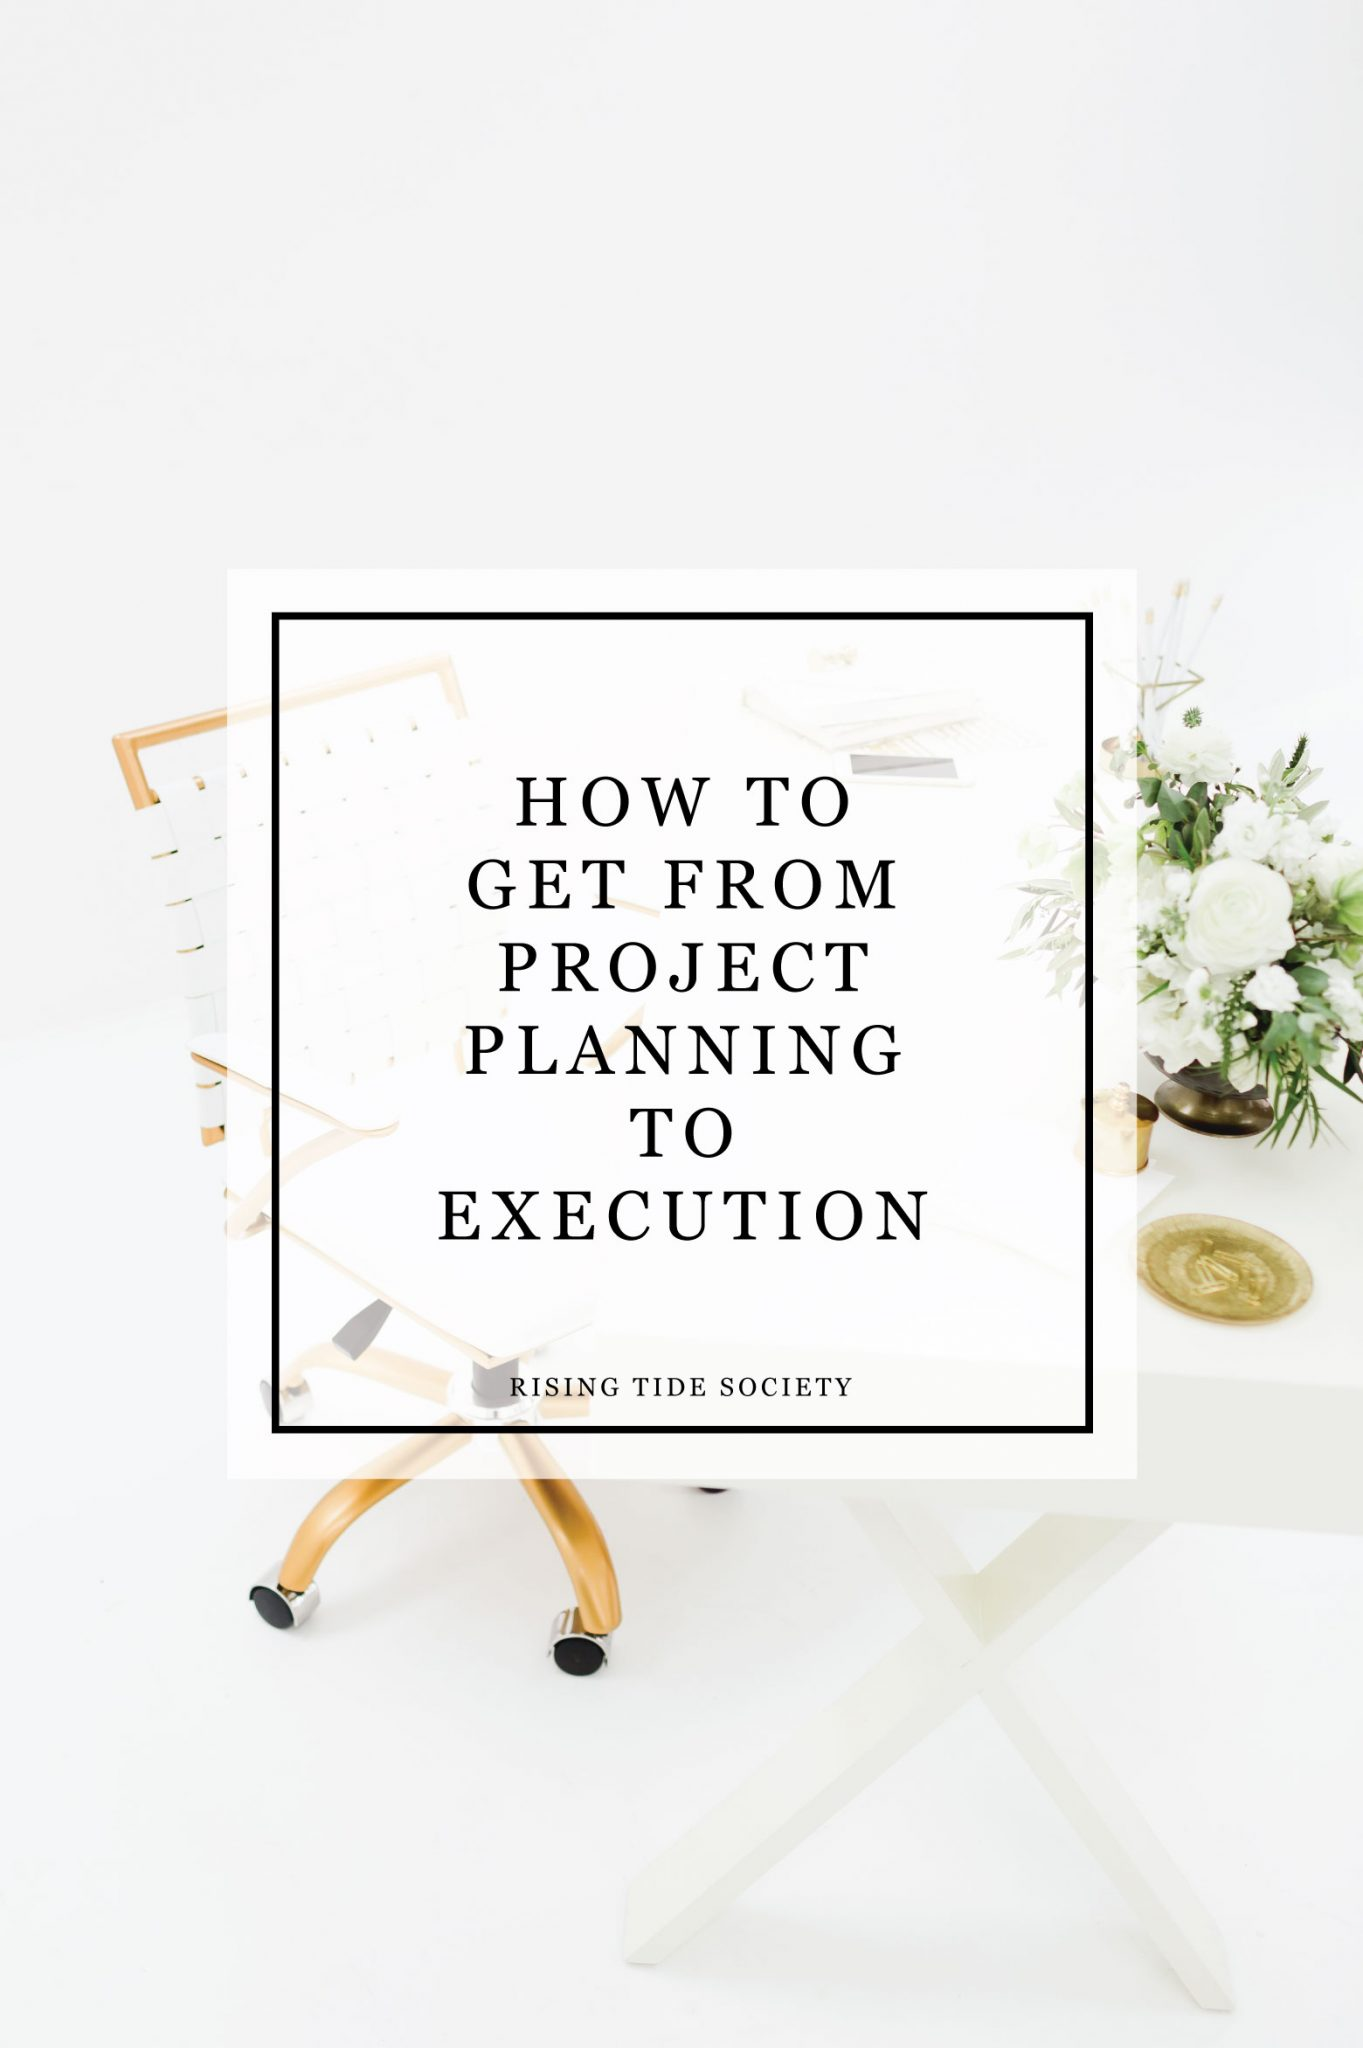 How to get from project planning to execution